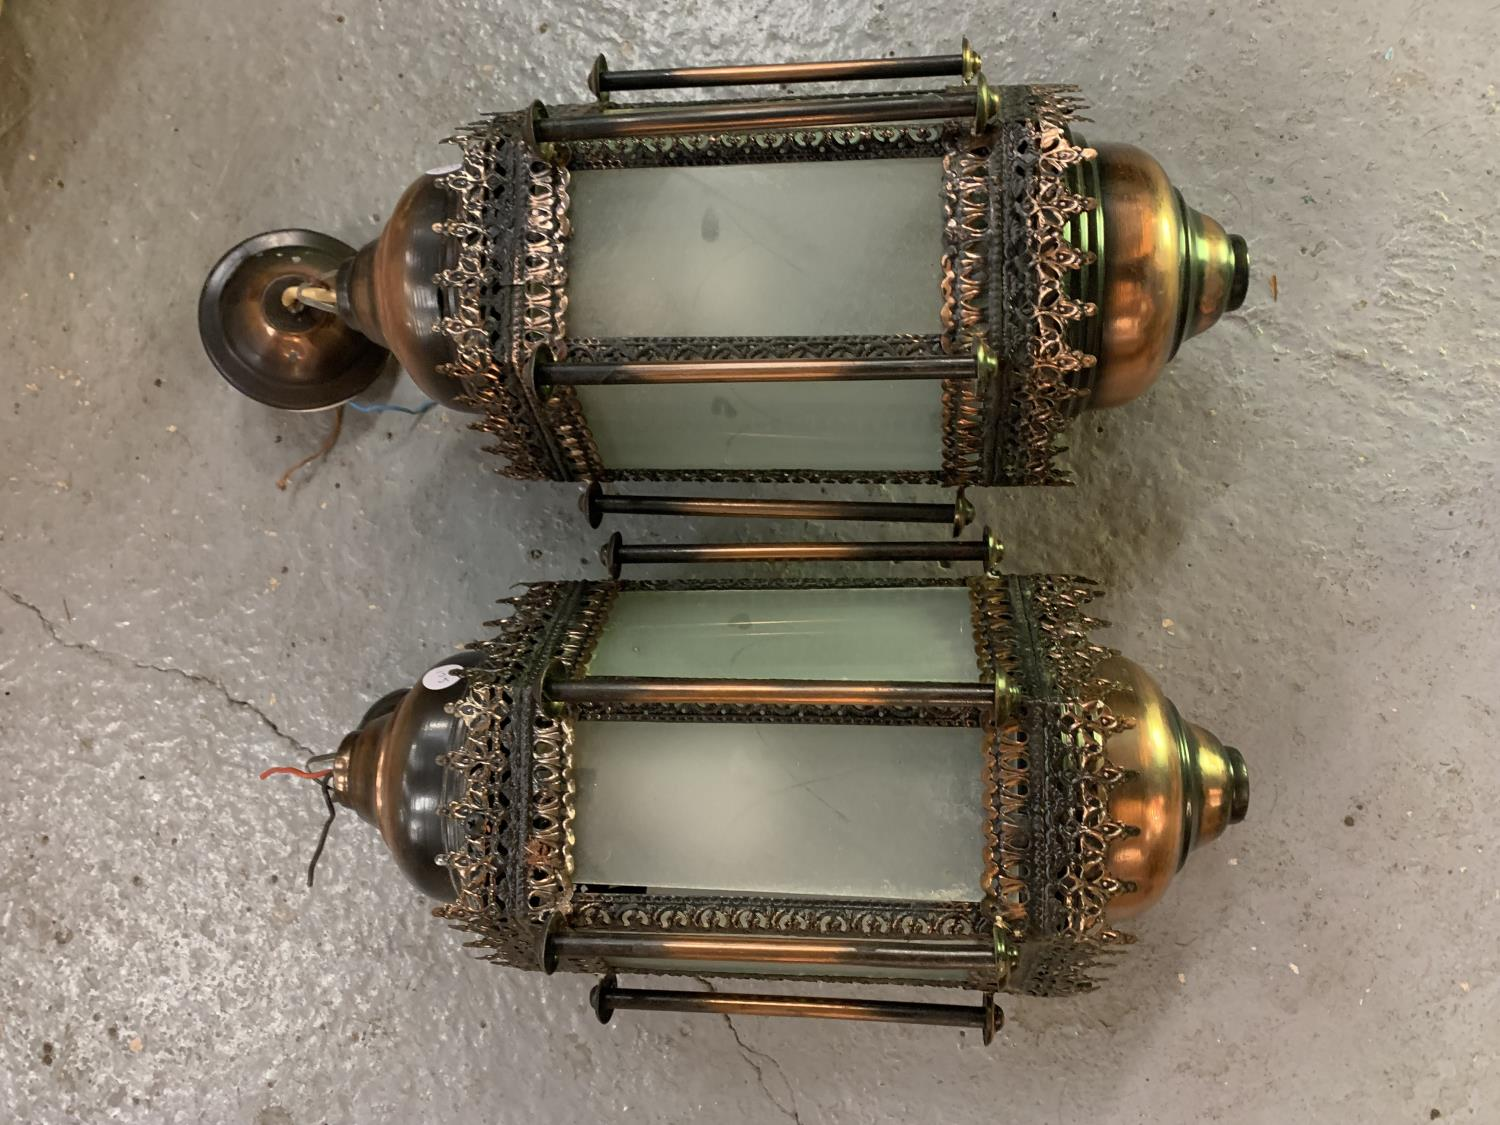 TWO MORROCAN STYLE LIGHTS WITH GLASS PANELS